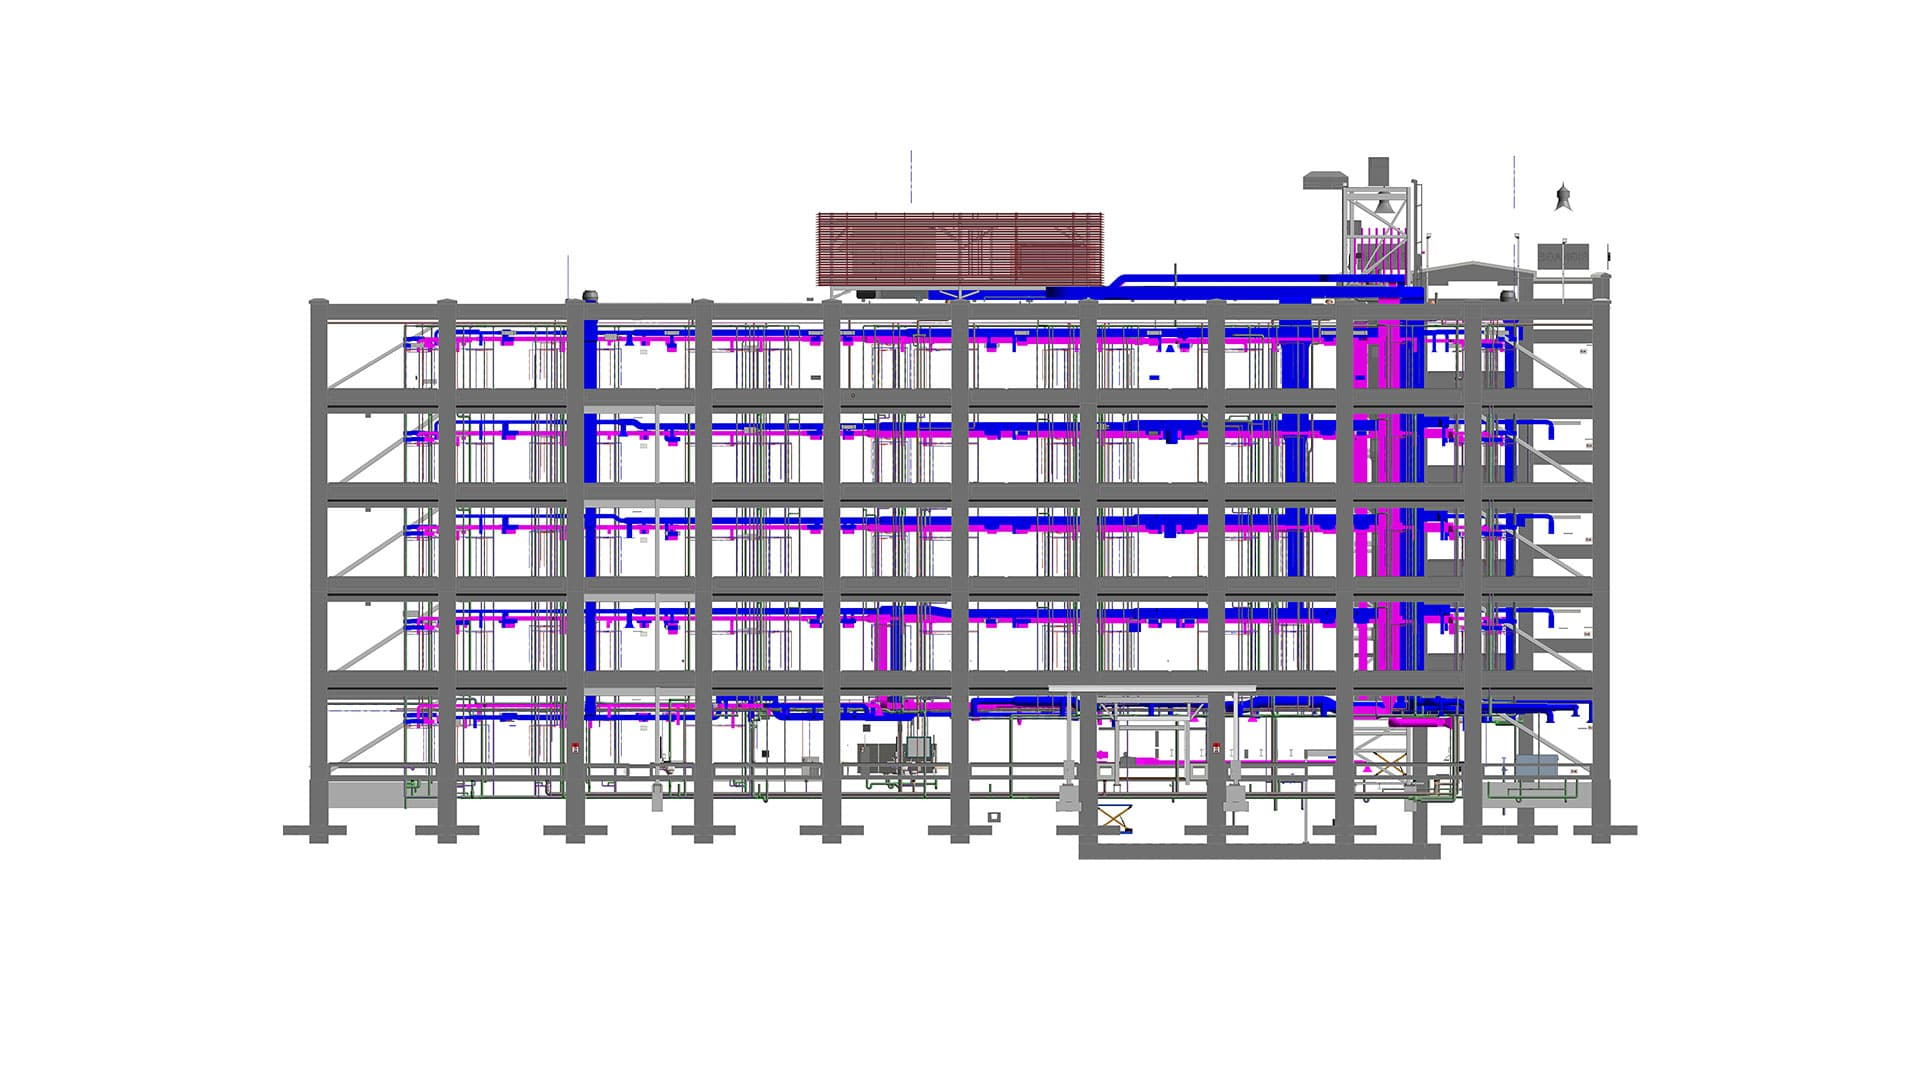 Structural-Model-with-integrated-MEP-designs--Hotel-Project-BIM-Modeling-Services-by-United-BIM-1